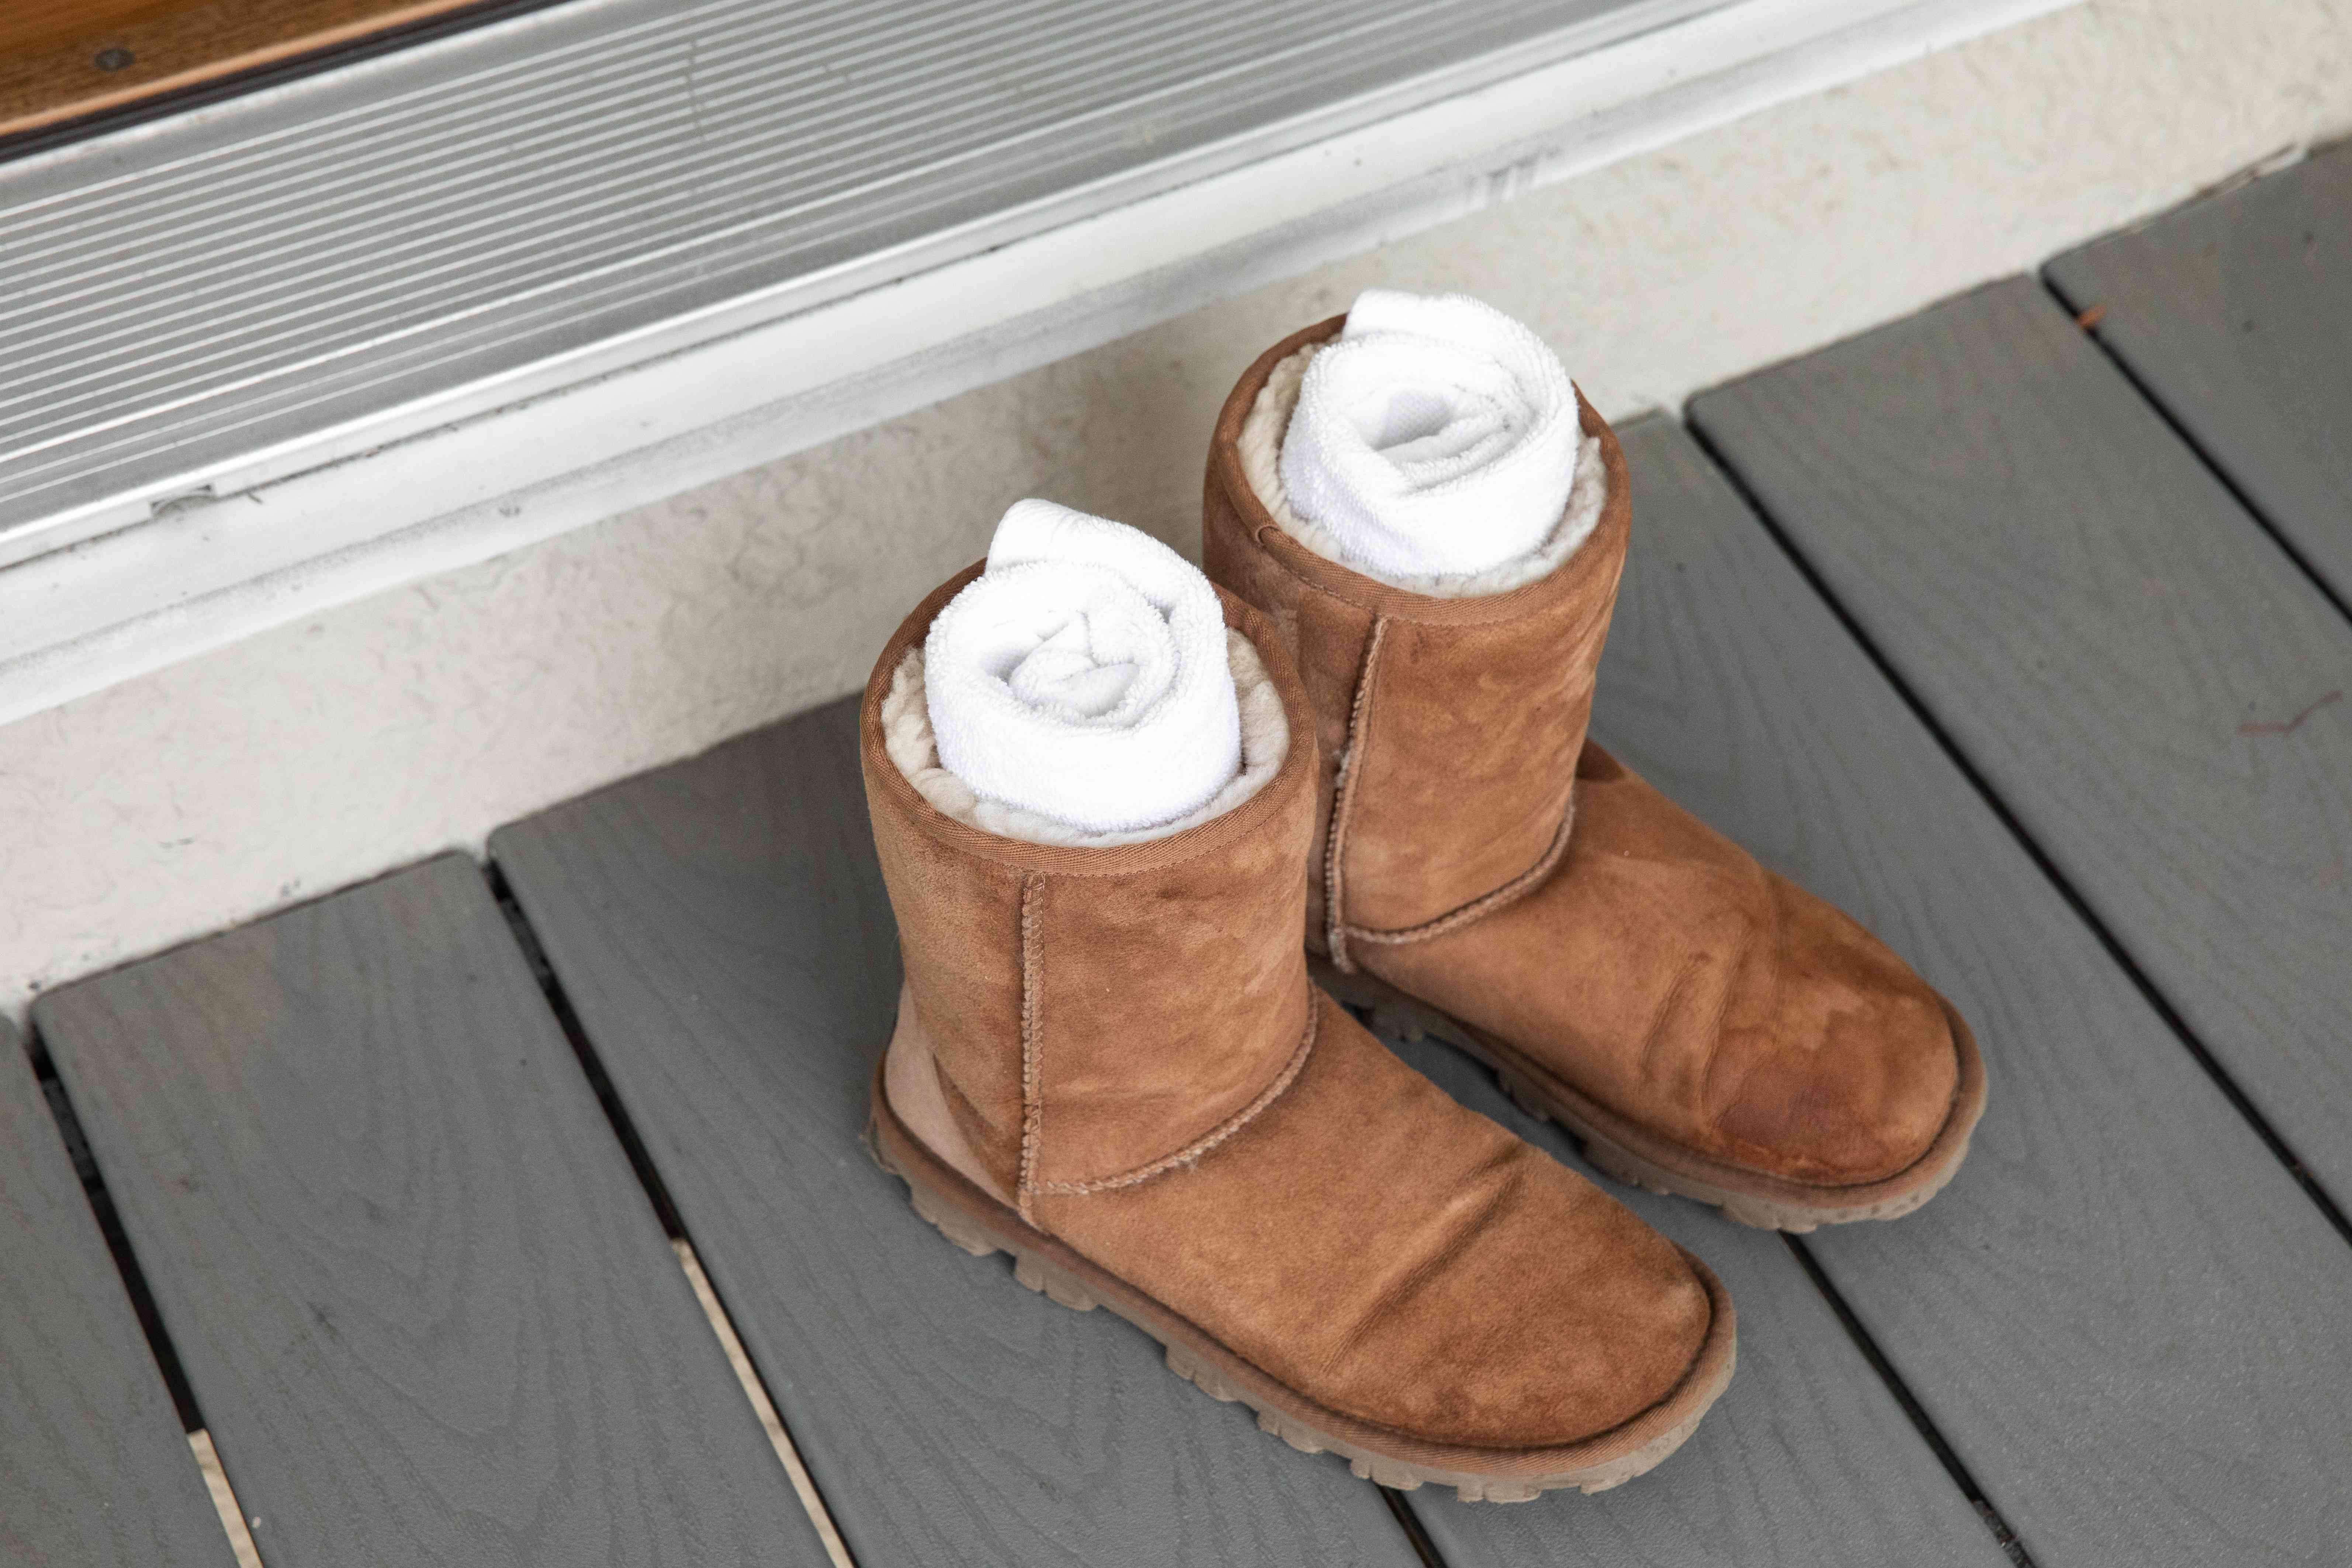 Rolled up towels in a pair of Ugg boots